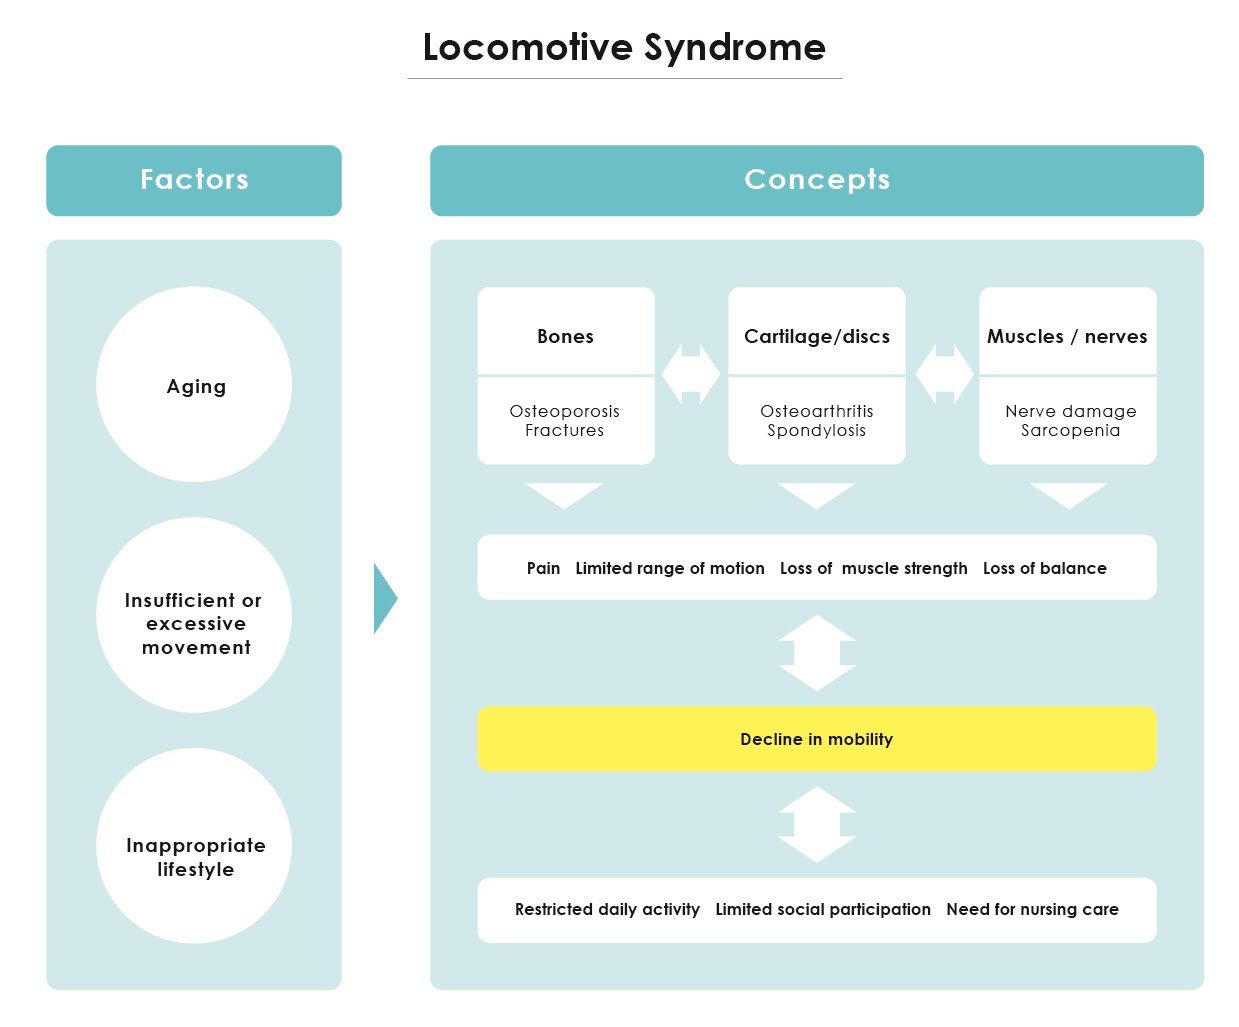 Figure 1. Conceptual overview of locomotive syndrome. Adapted from Locomotive syndrome. Locomotive syndrome pamphlet 2013, edited by Locomotive Challenge! Council, Japanese Orthopaedic Association, Tokyo, 2013.